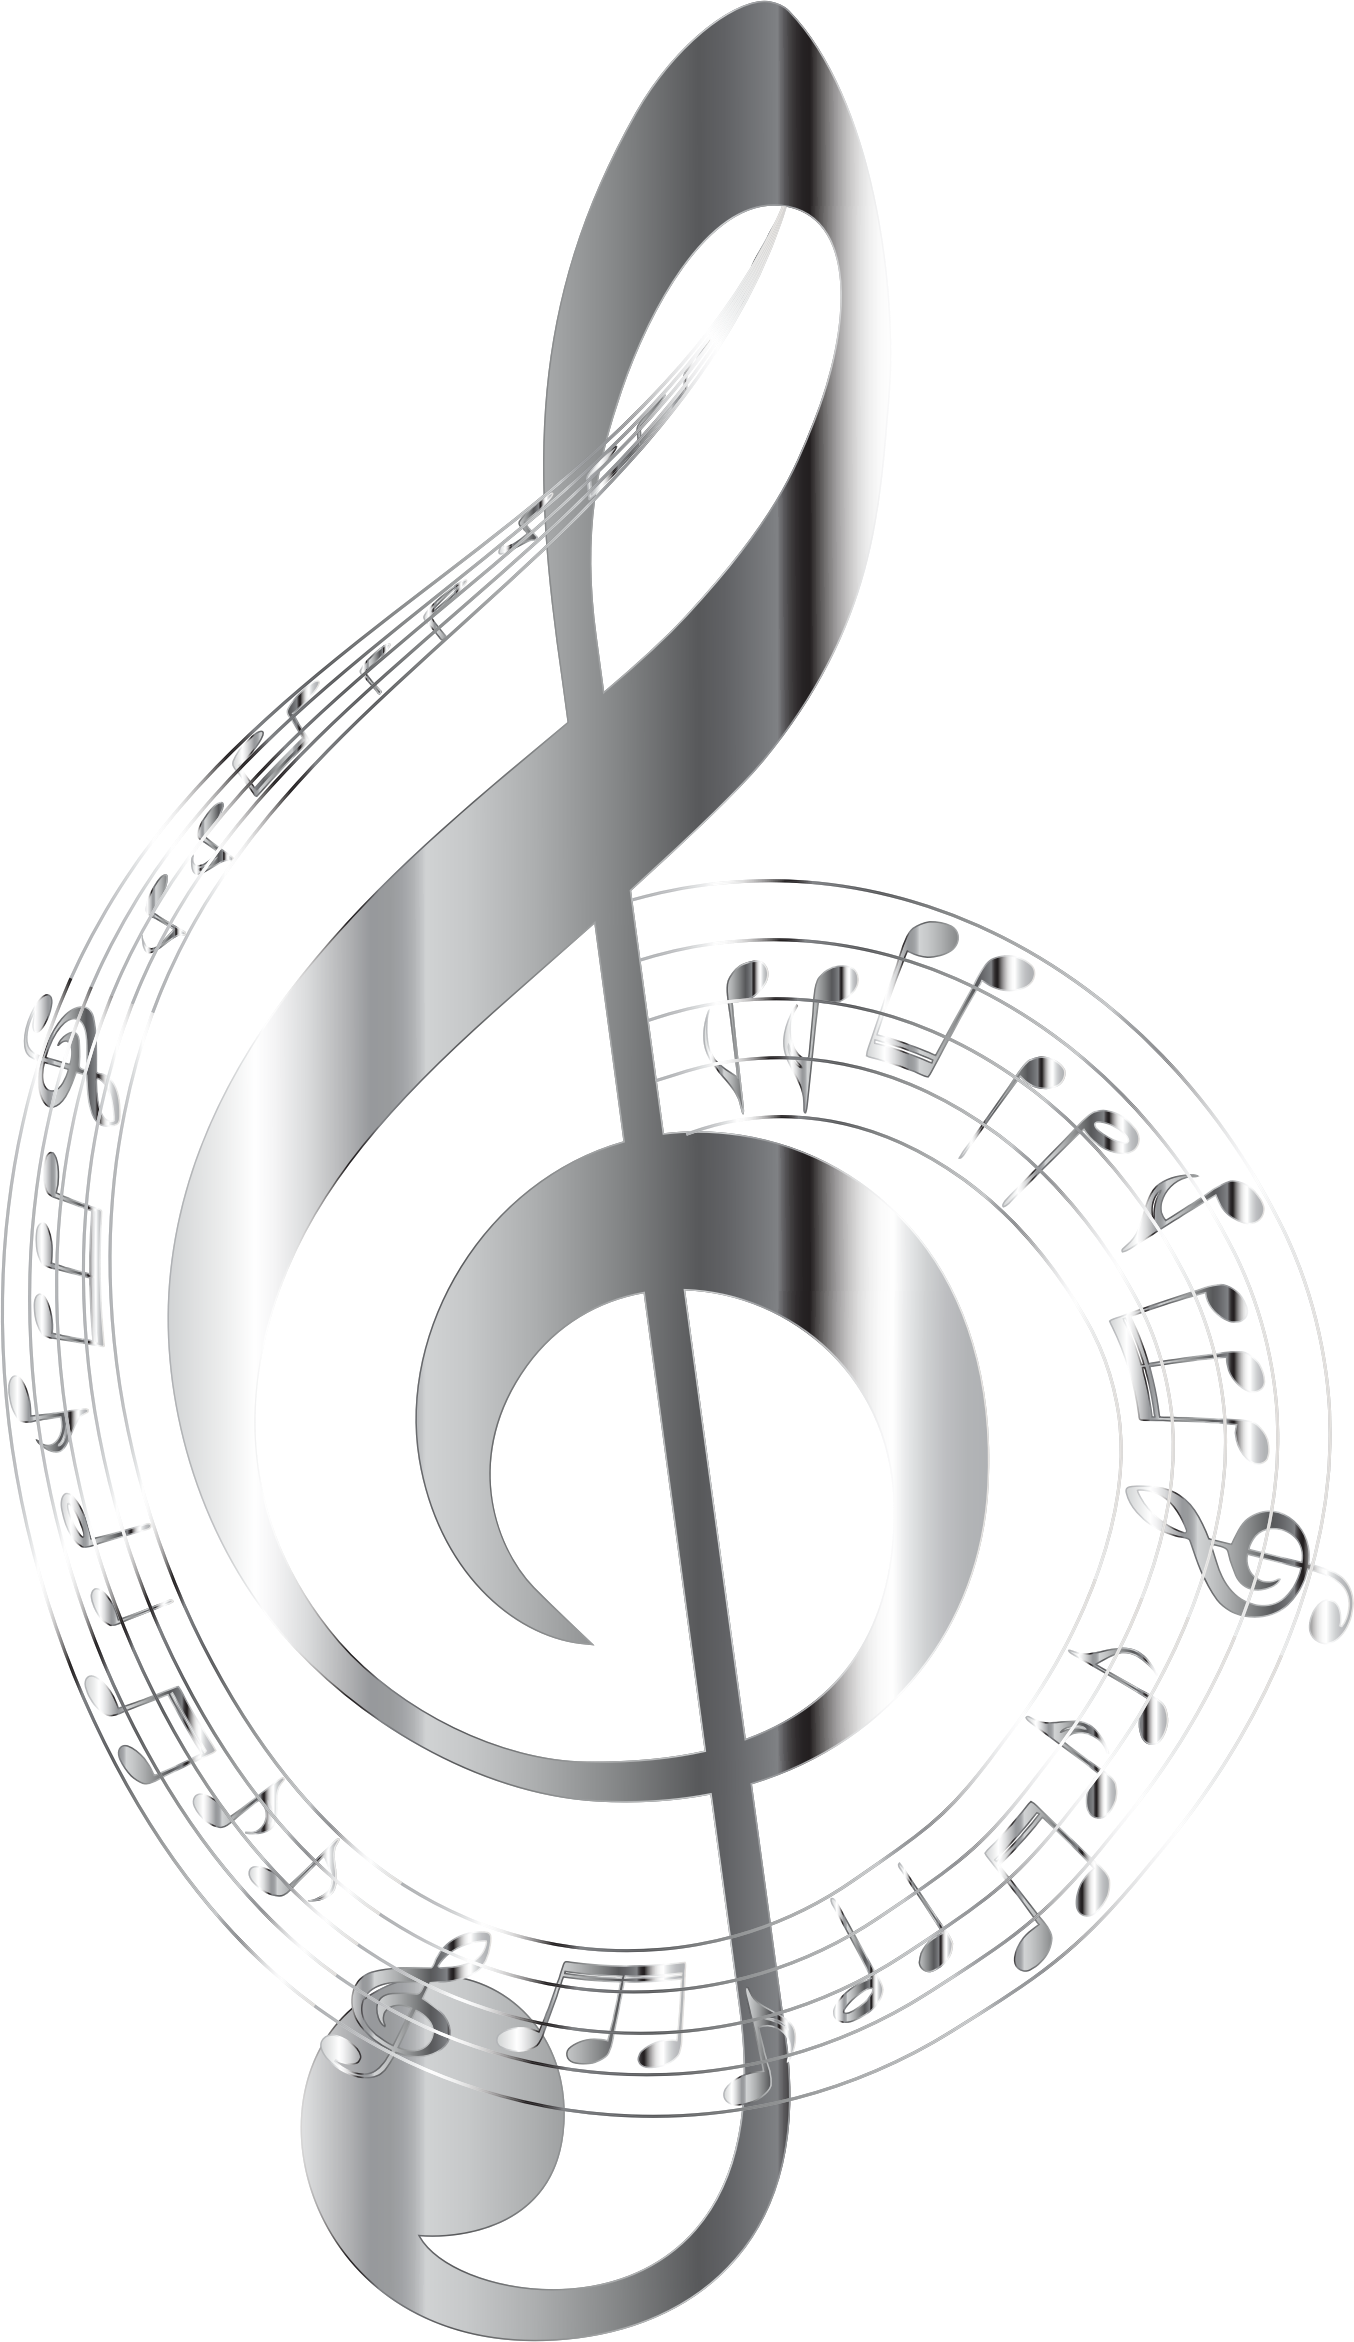 Music note background png. Chrome musical notes typography